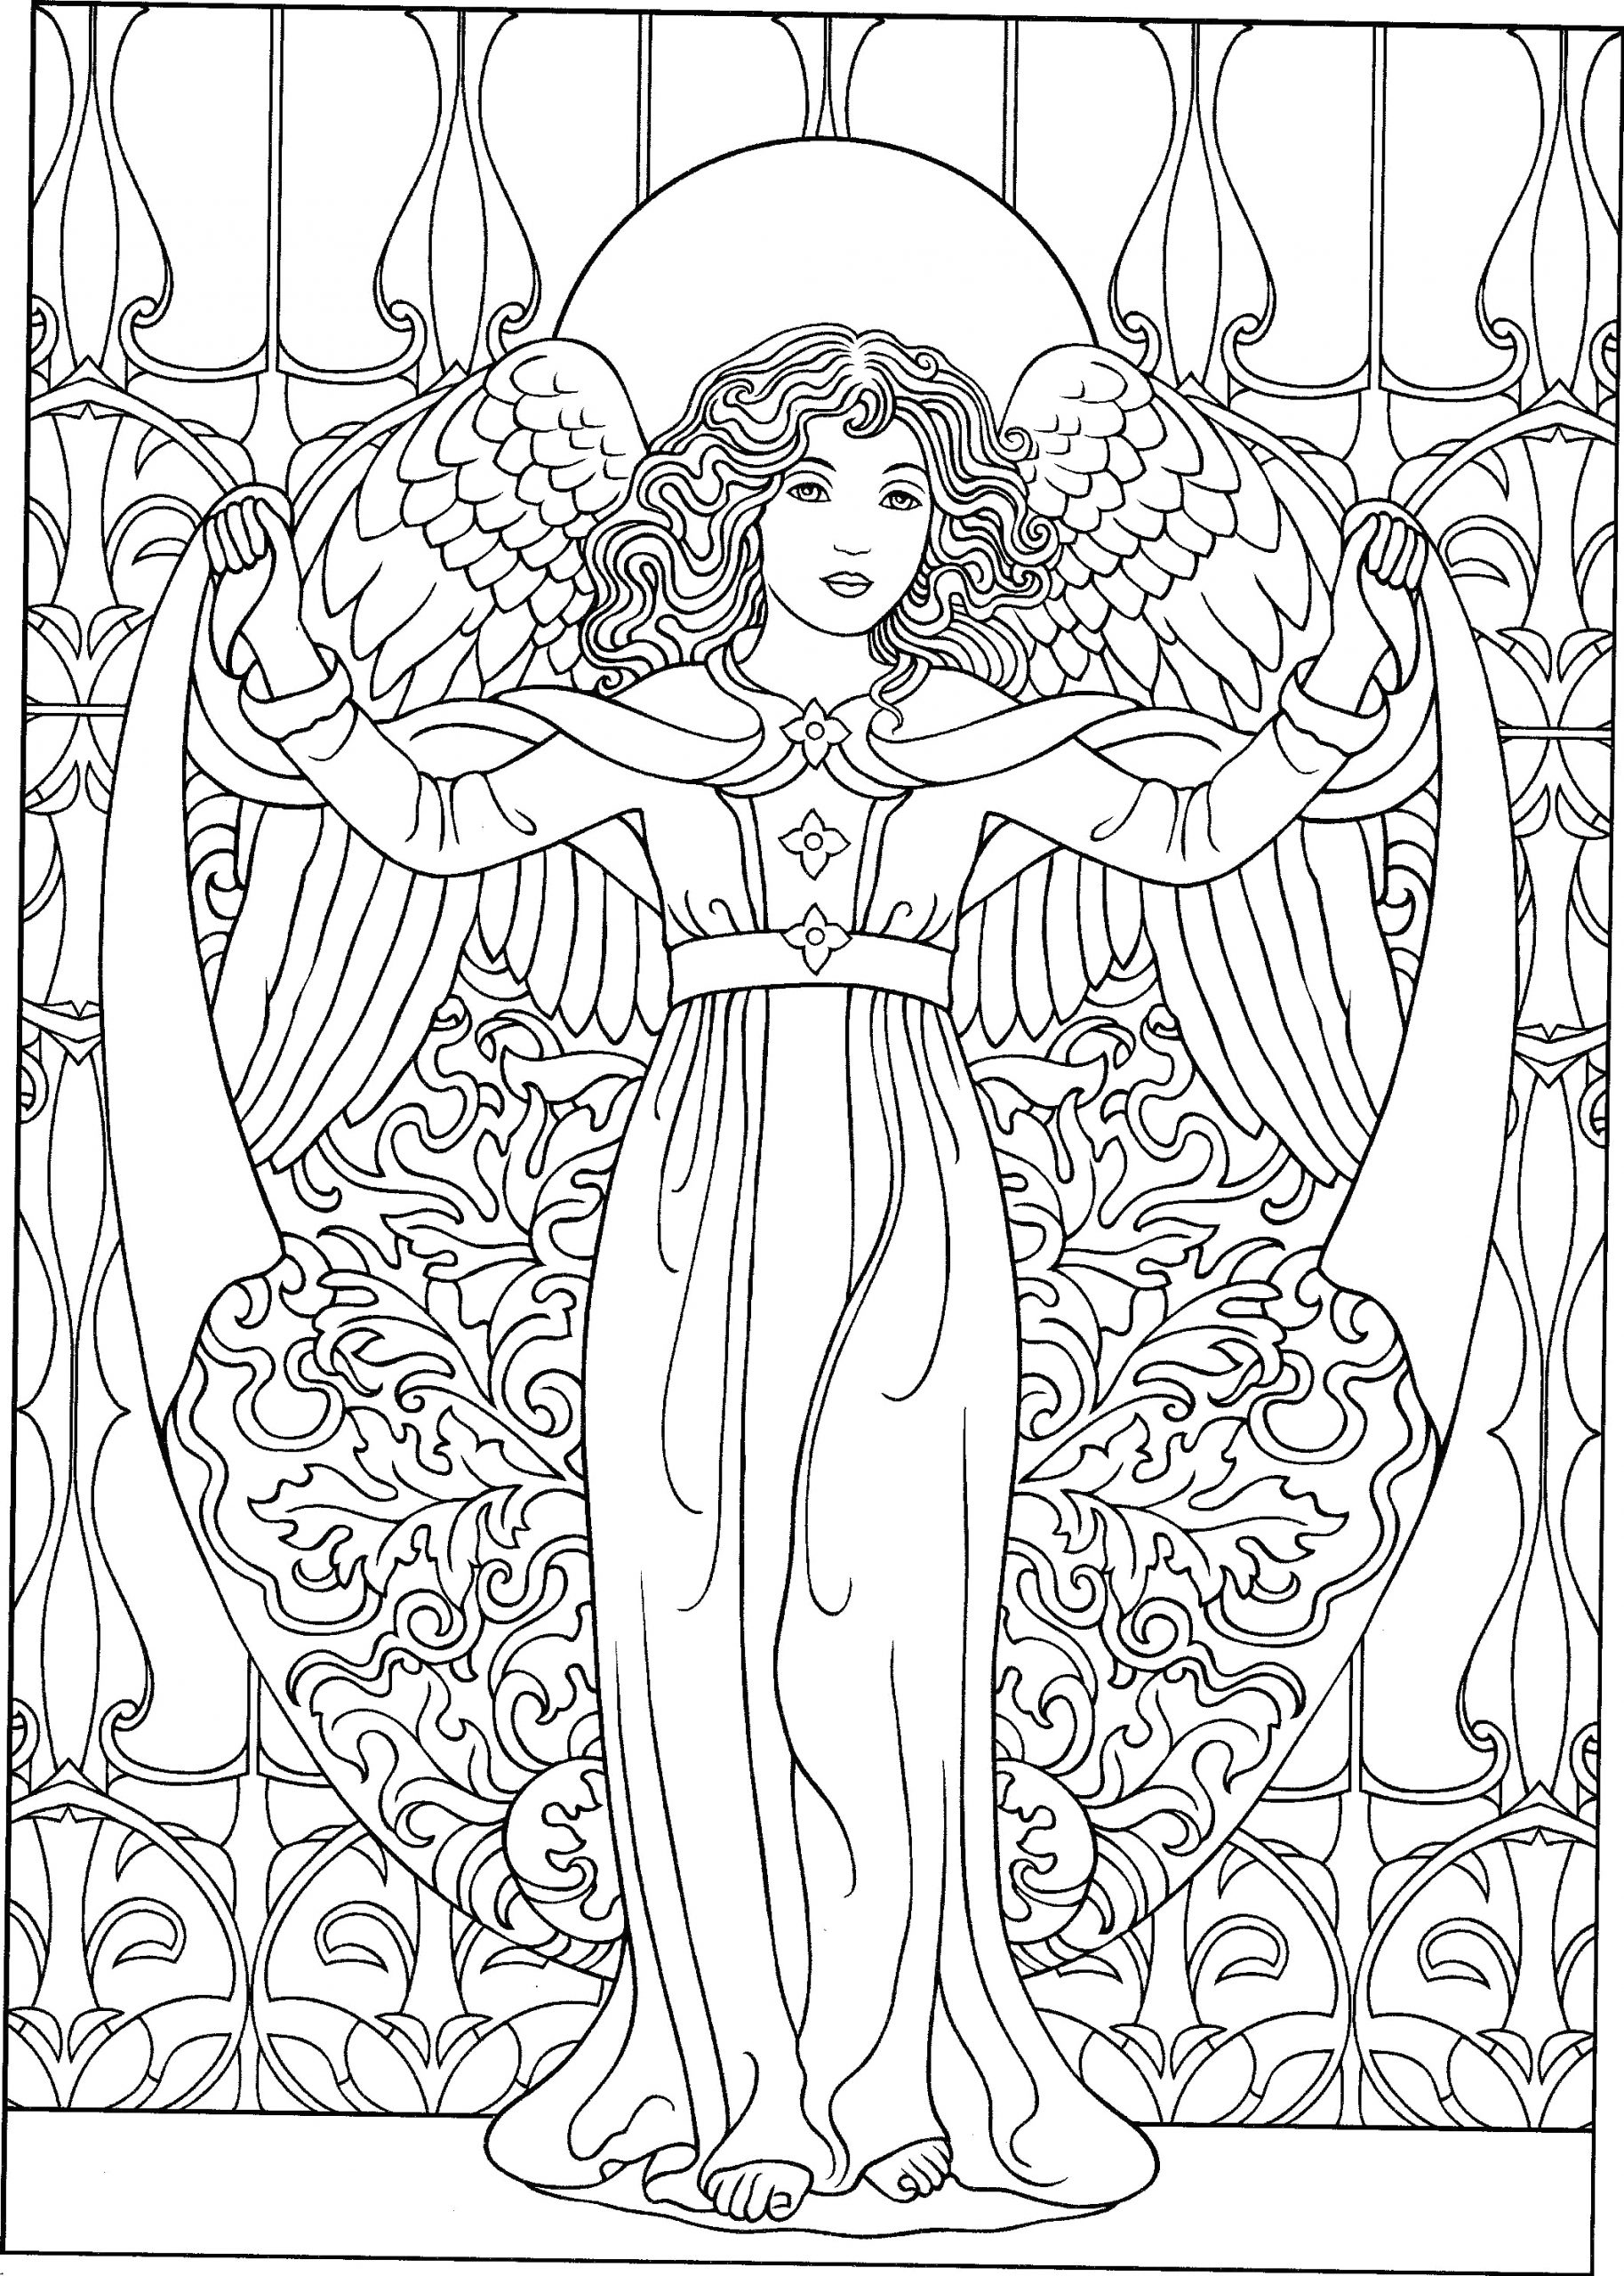 Free Printable Coloring Pages for Adults Angels Beautiful Angel Coloring Page